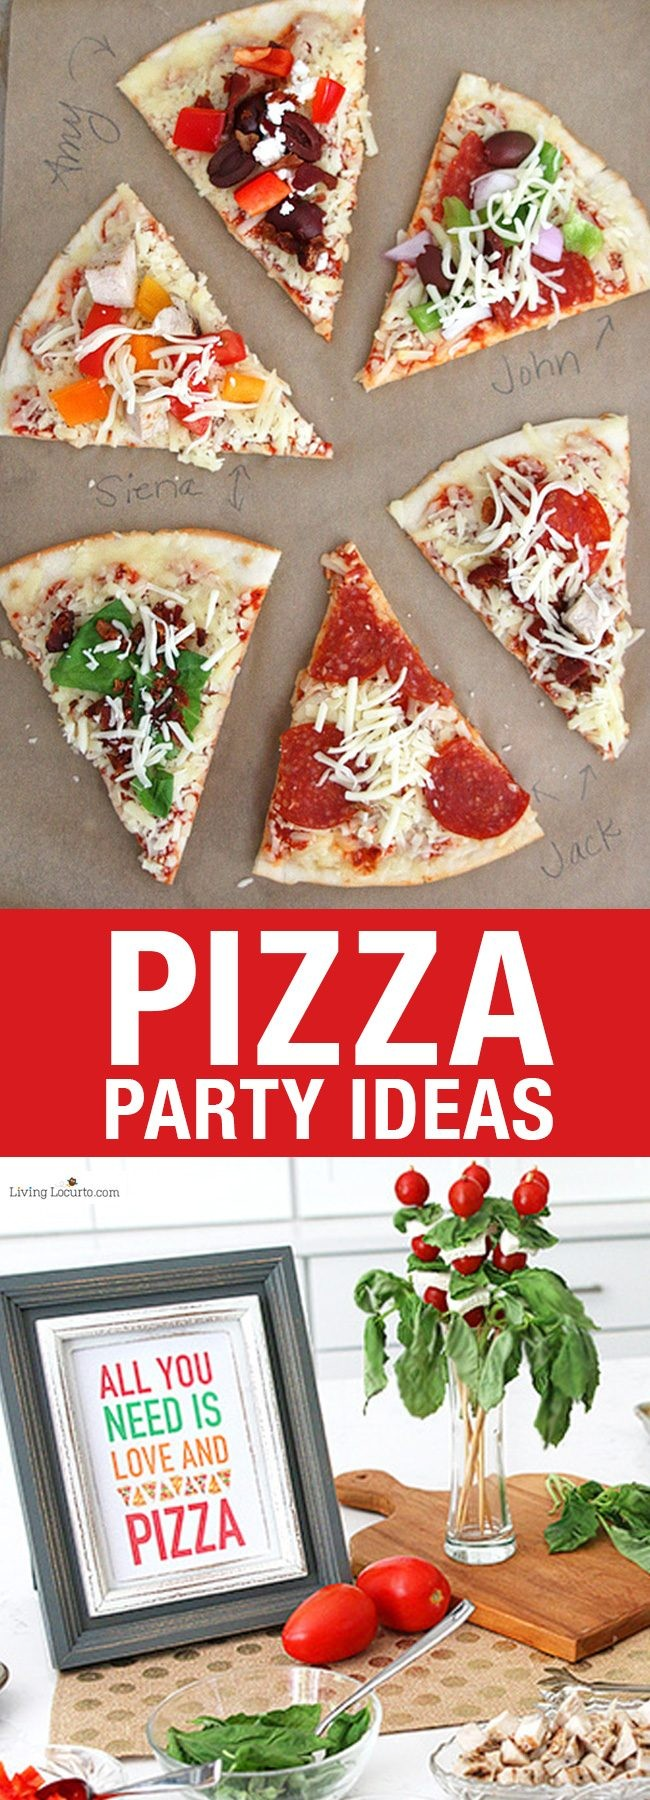 Easy Pizza Party Ideas! How to make a pizza bar with frozen pizza. Buffet idea for a family dinner, birthday party or graduation. Free printable pizza quotes.